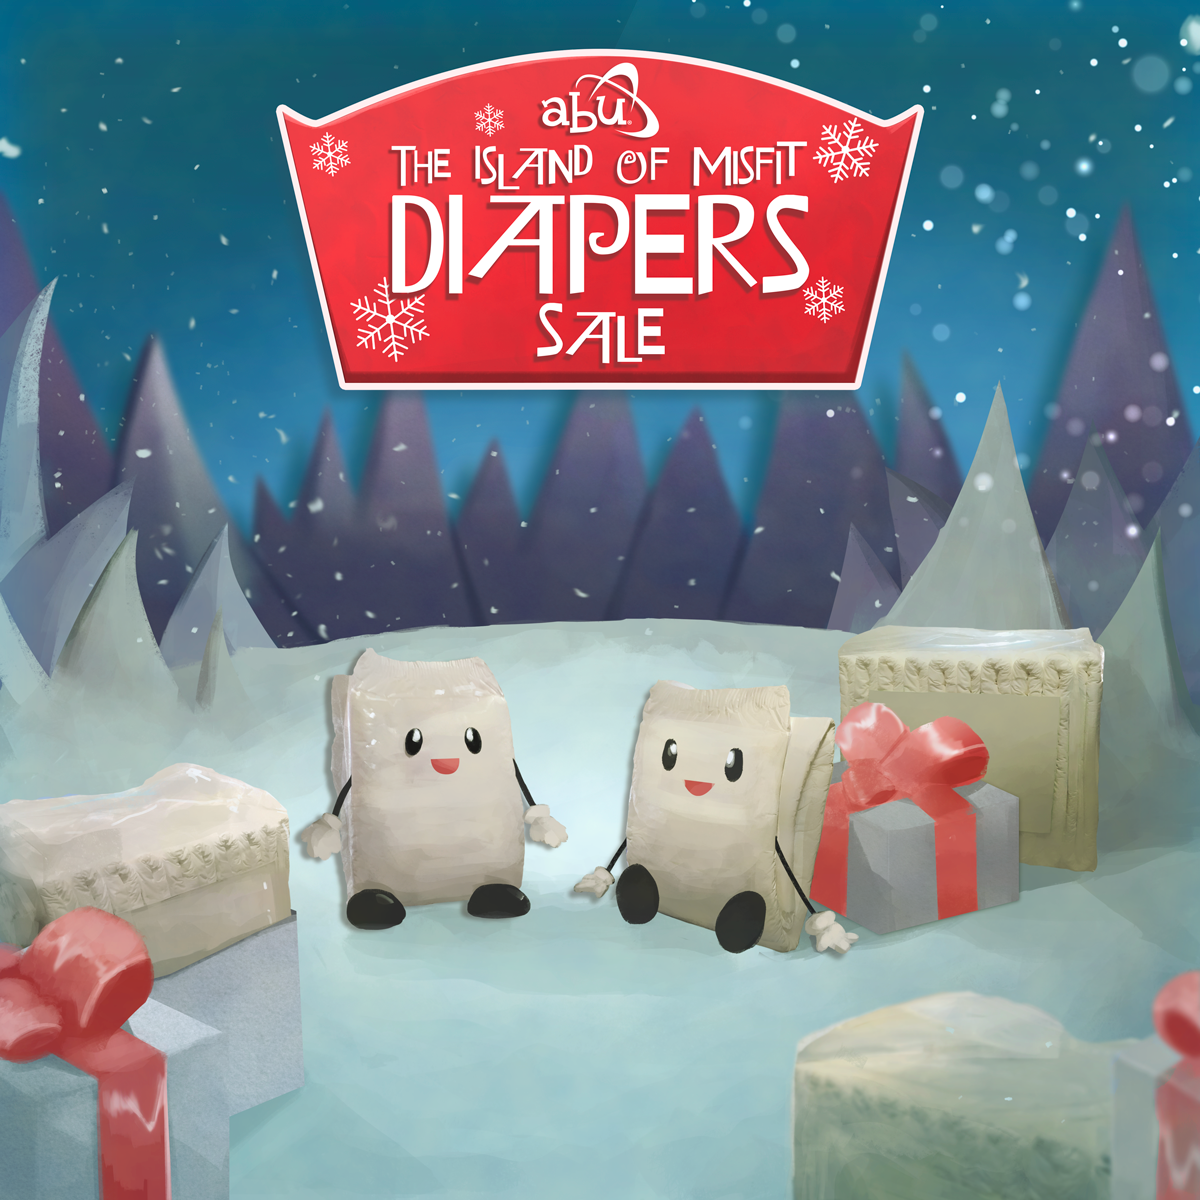 ABU Island Of Misfit Diapers Sale